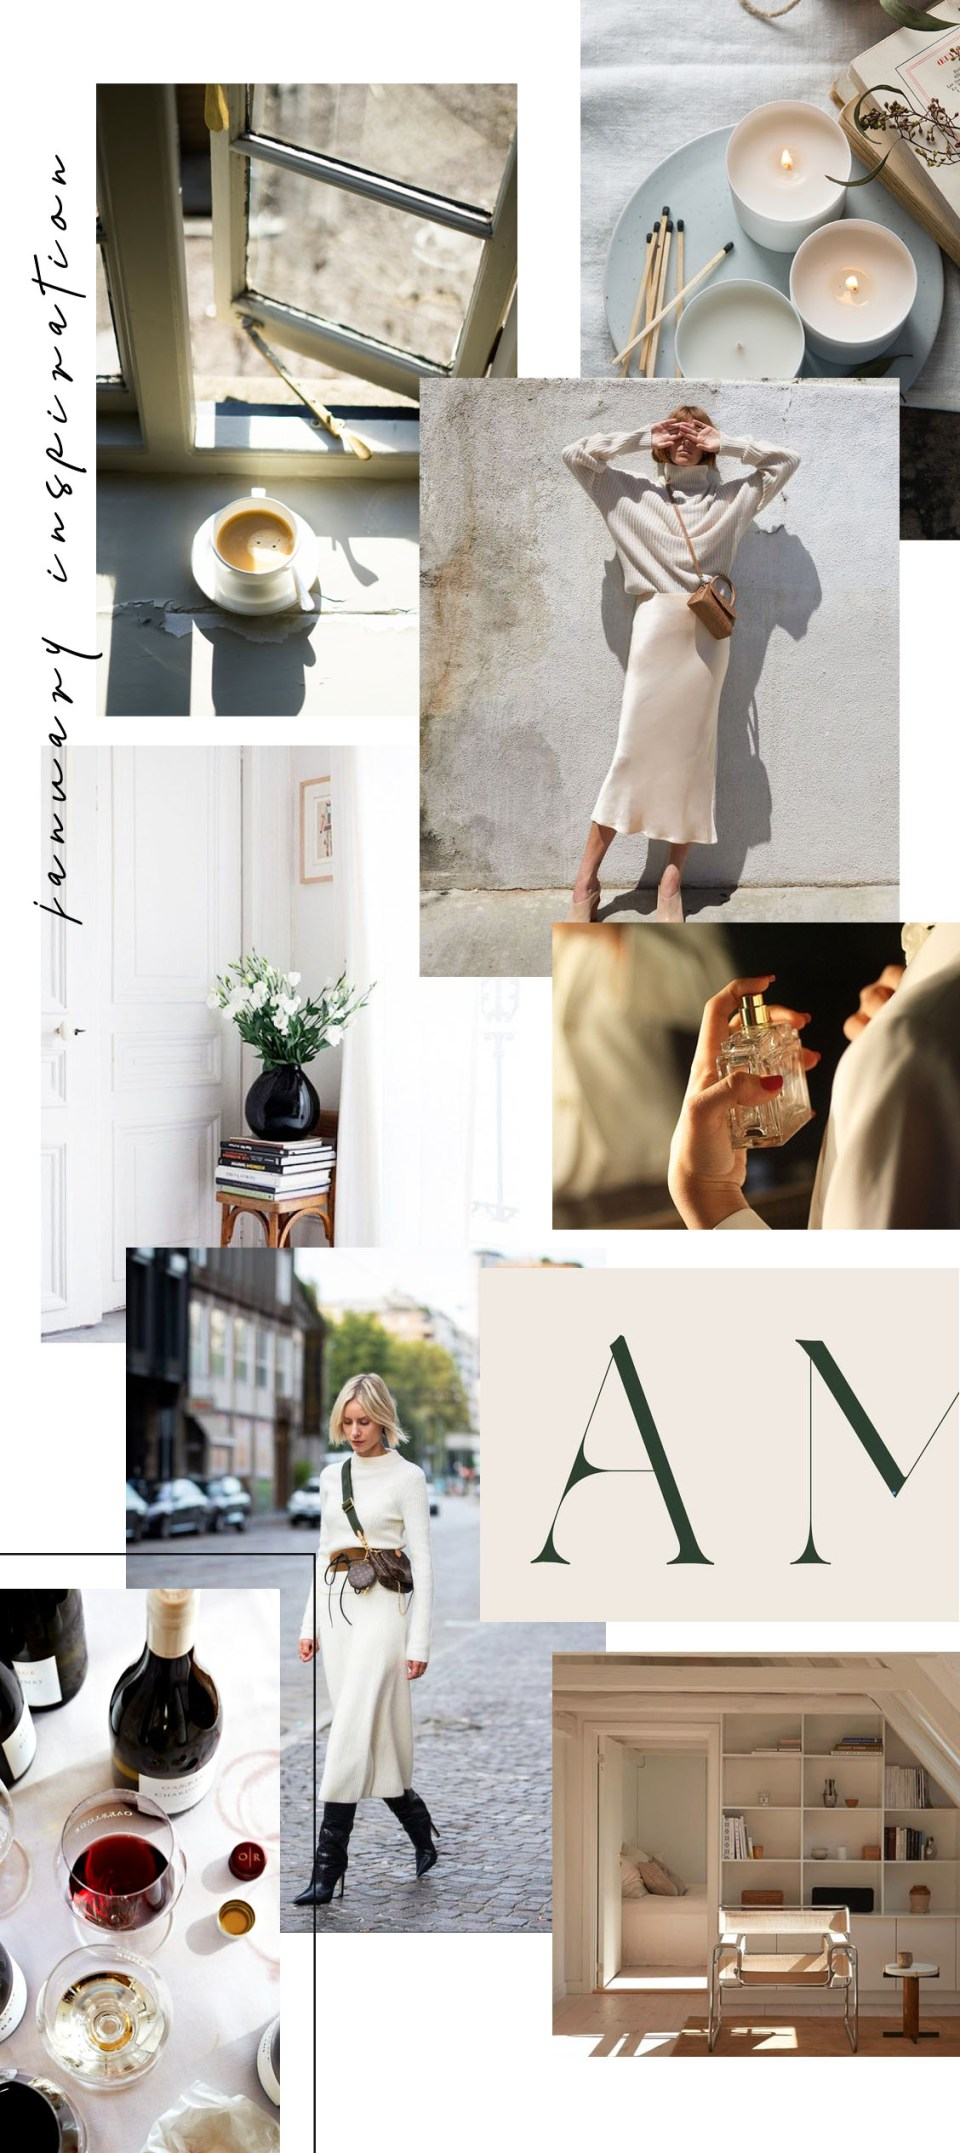 January Inspiration Mood Board from Millay Blog